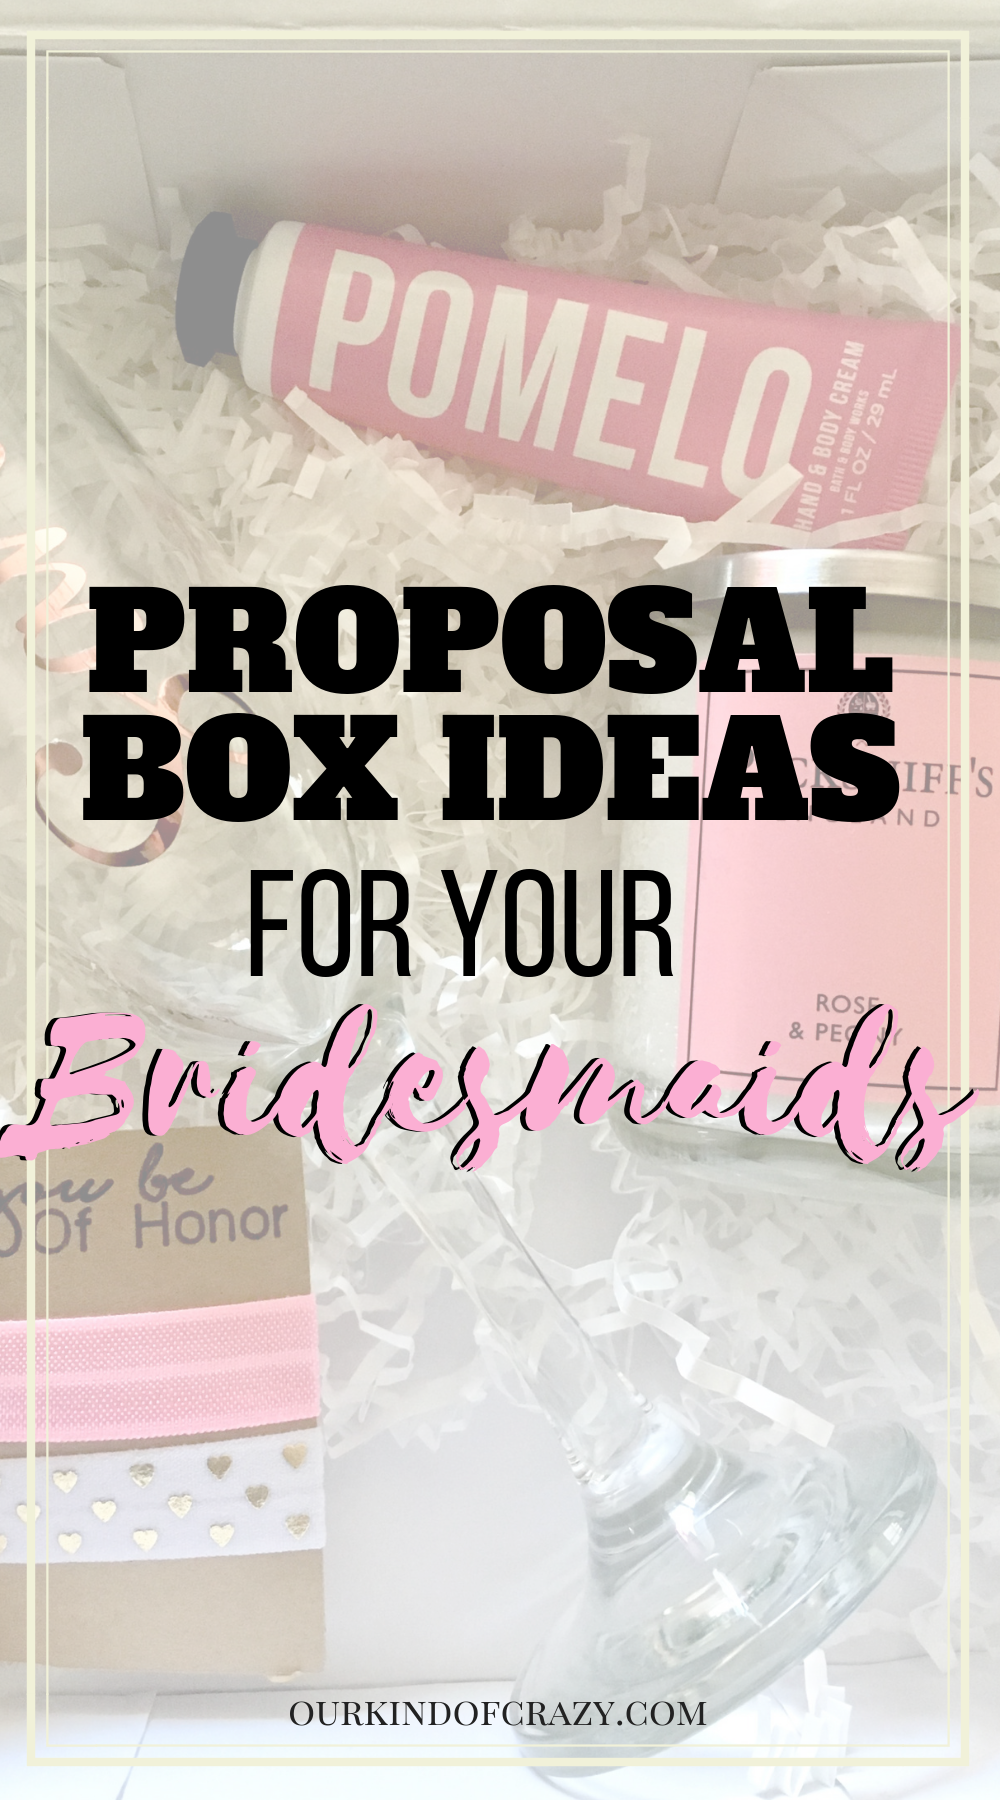 Bridesmaid Gifts for your bridesmaid proposals- Here are some great ideas for your Bridesmaid Proposal Boxes